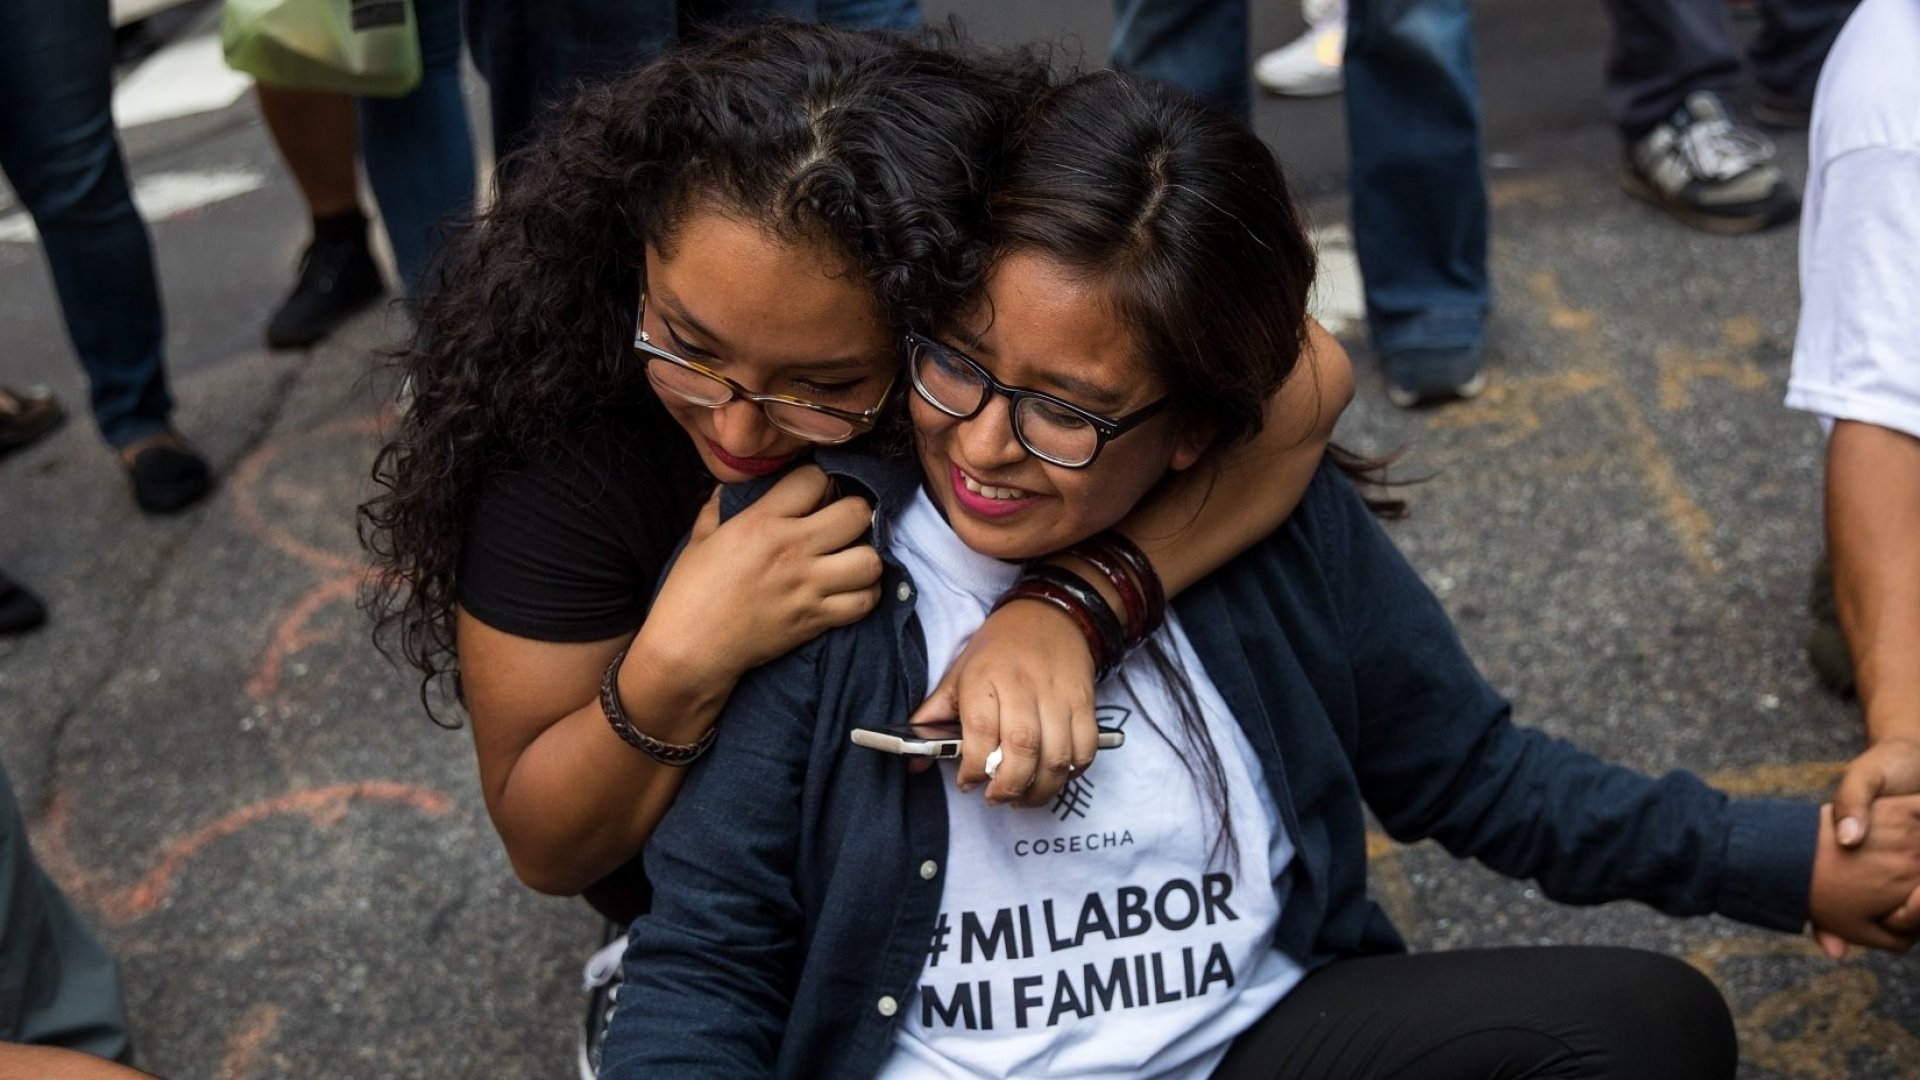 Immigration activists protesting the Trump administration's decision on the Deferred Action for Childhood Arrivals program sit in the street and block traffic on 5th Avenue near Trump Tower, September 5, 2017.